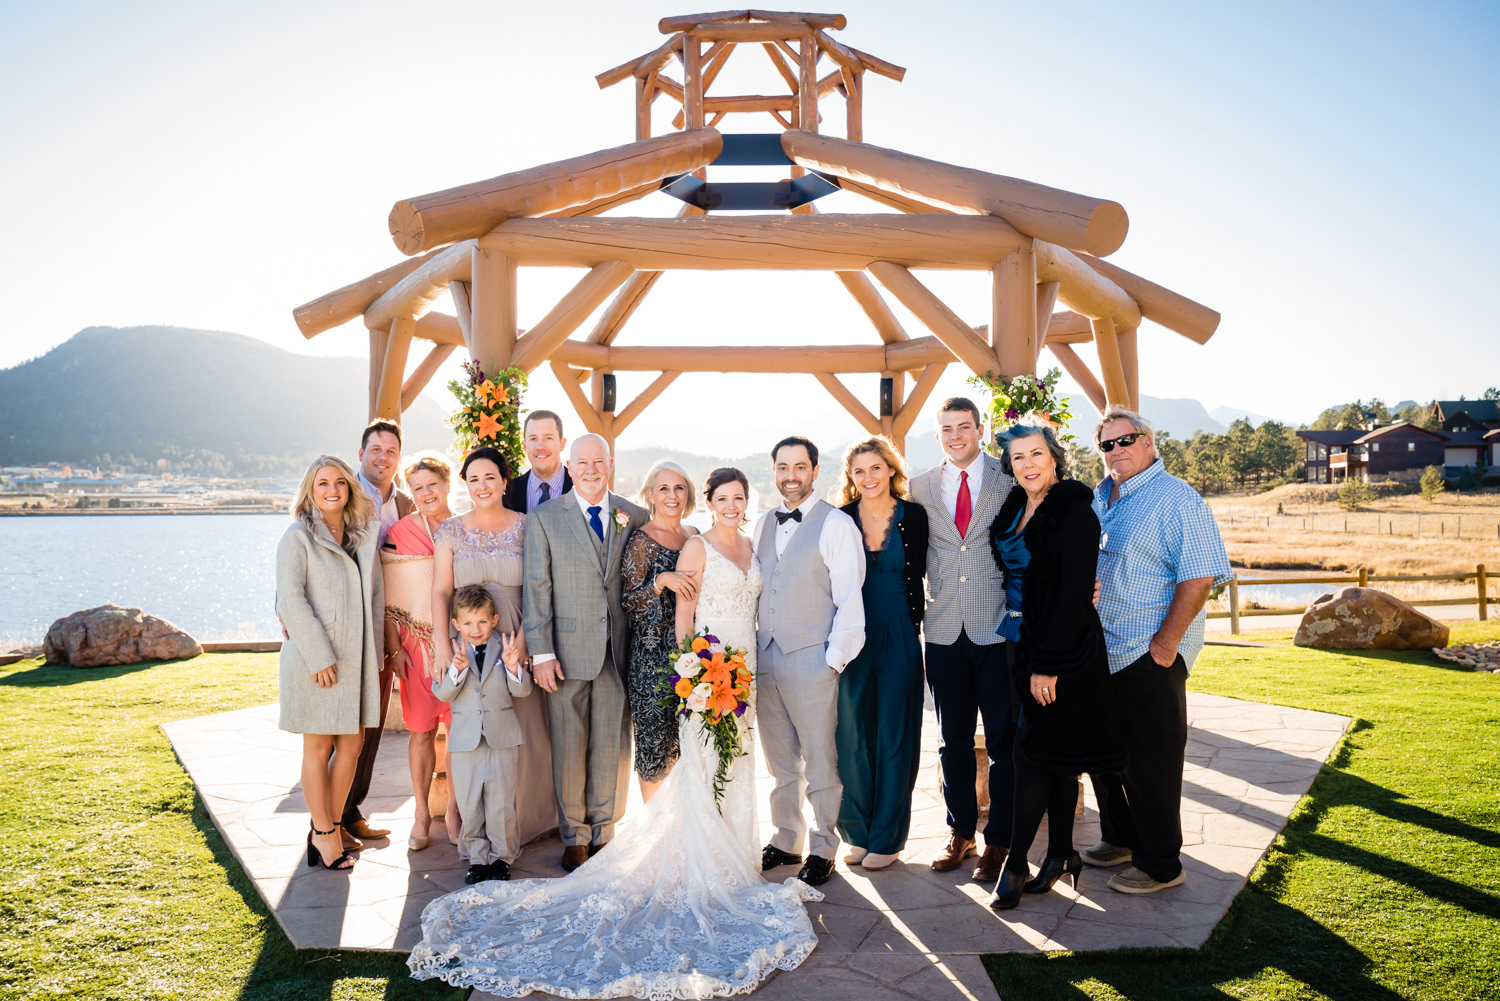 Estes Park Resort Wedding photographed by Estes Park Wedding Photographer,  JMGant Photography